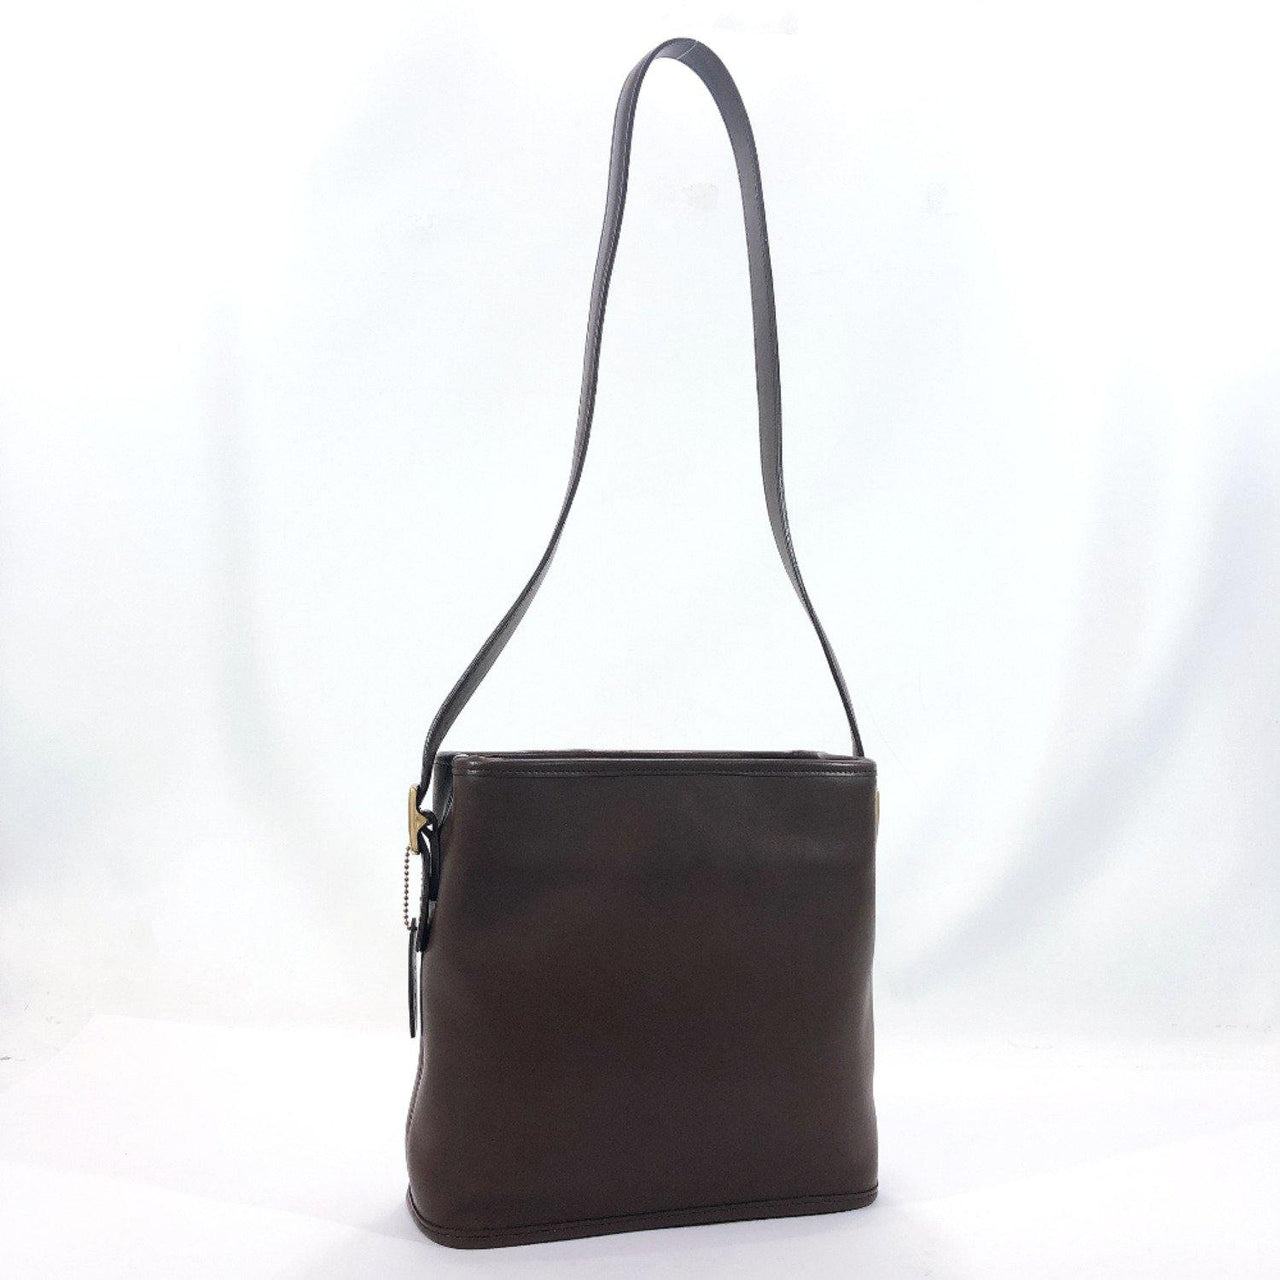 COACH Shoulder Bag leather Brown Women Used - JP-BRANDS.com